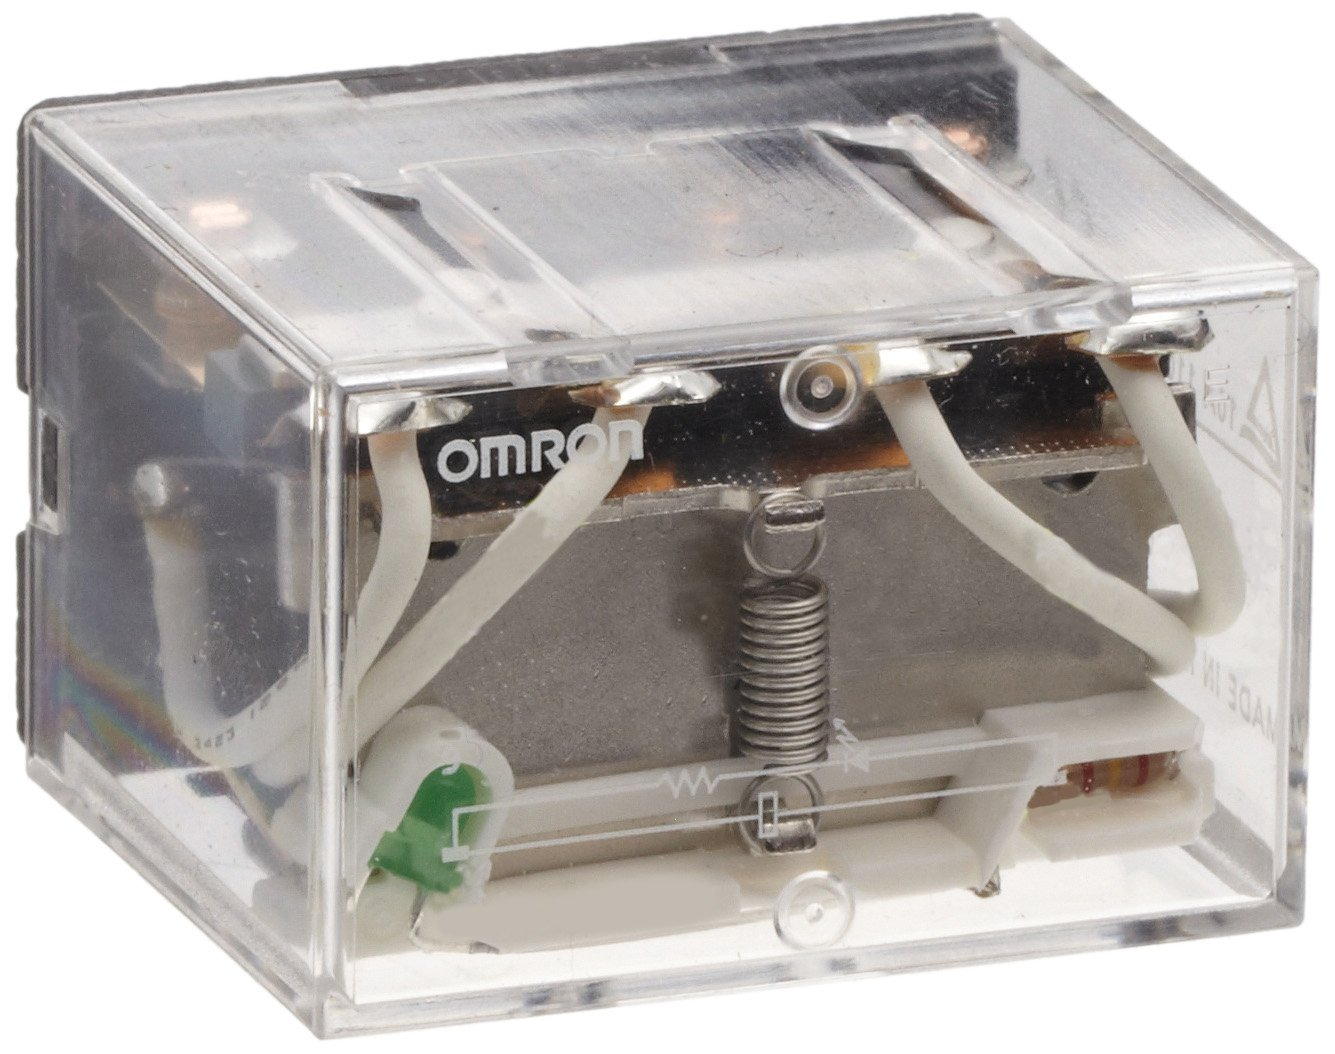 Omron LY2N-AC100/110 General Purpose Relay, LED Indicator Type, Plug-In/Solder Terminal, Standard Bracket Mounting, Single Contact, Double Pole Double Throw Contacts, 11.7 to 12.9 mA at 50 Hz and 10 to 11 mA at 60 Hz Rated Load Current, 100 to 110 VAC Rat